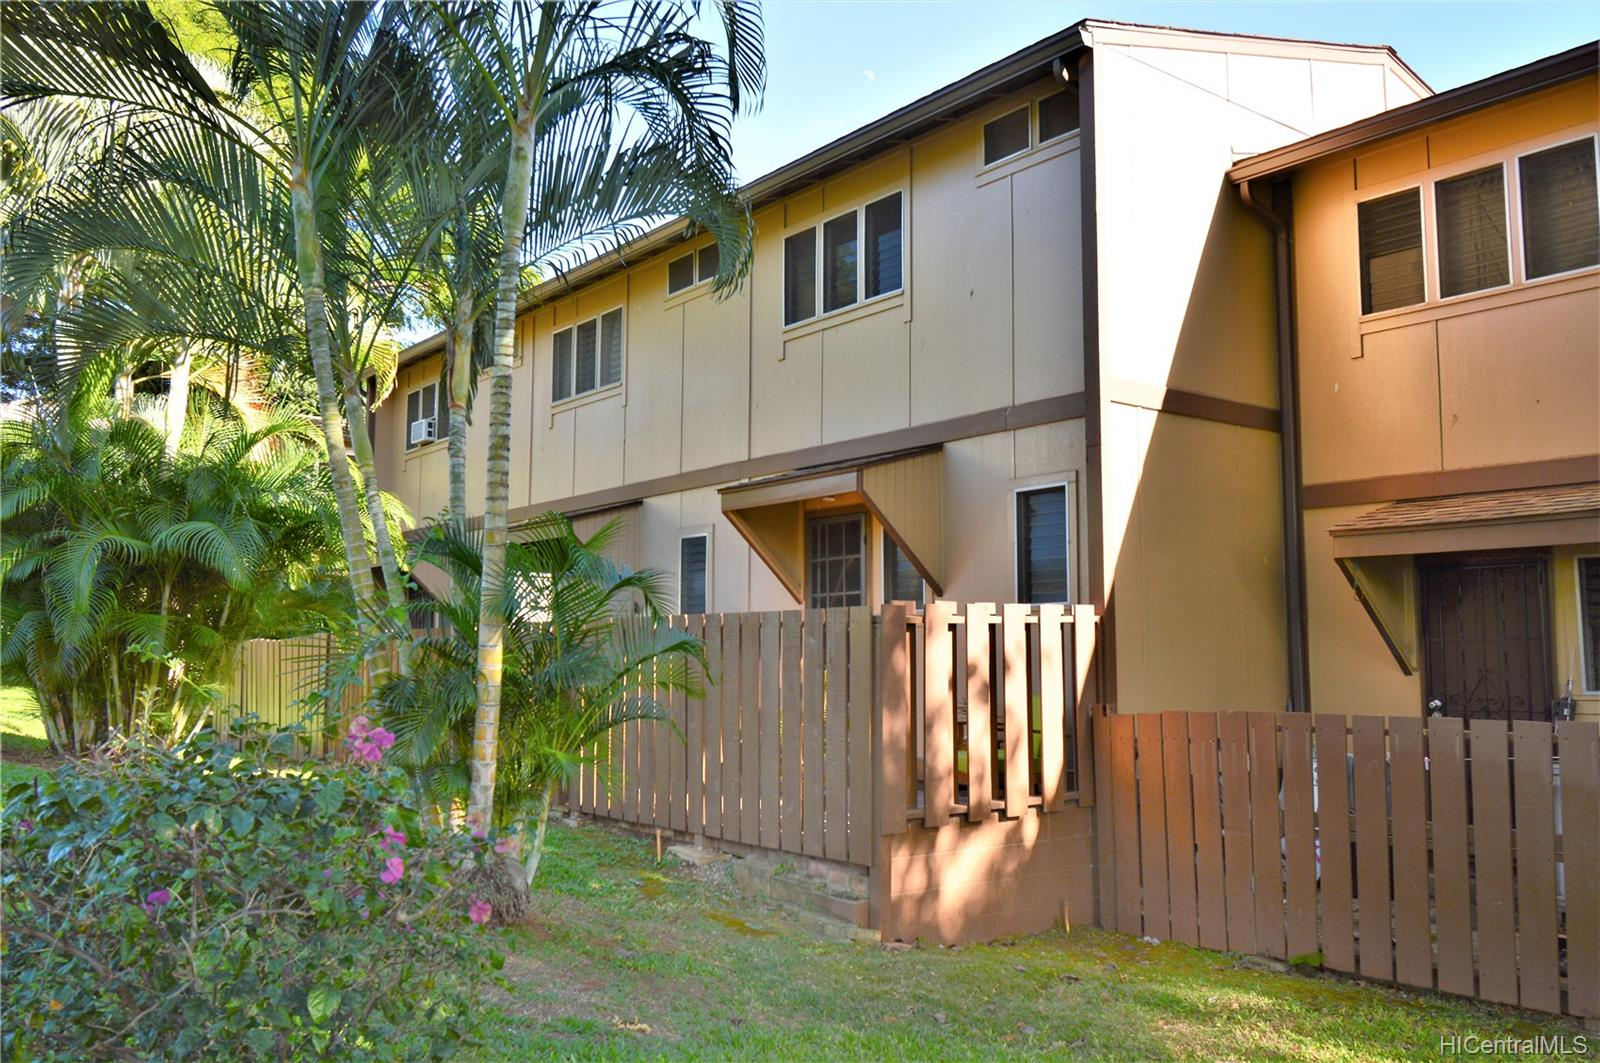 98-1397 Hinu Place townhouse # D, Pearl City, Hawaii - photo 24 of 25